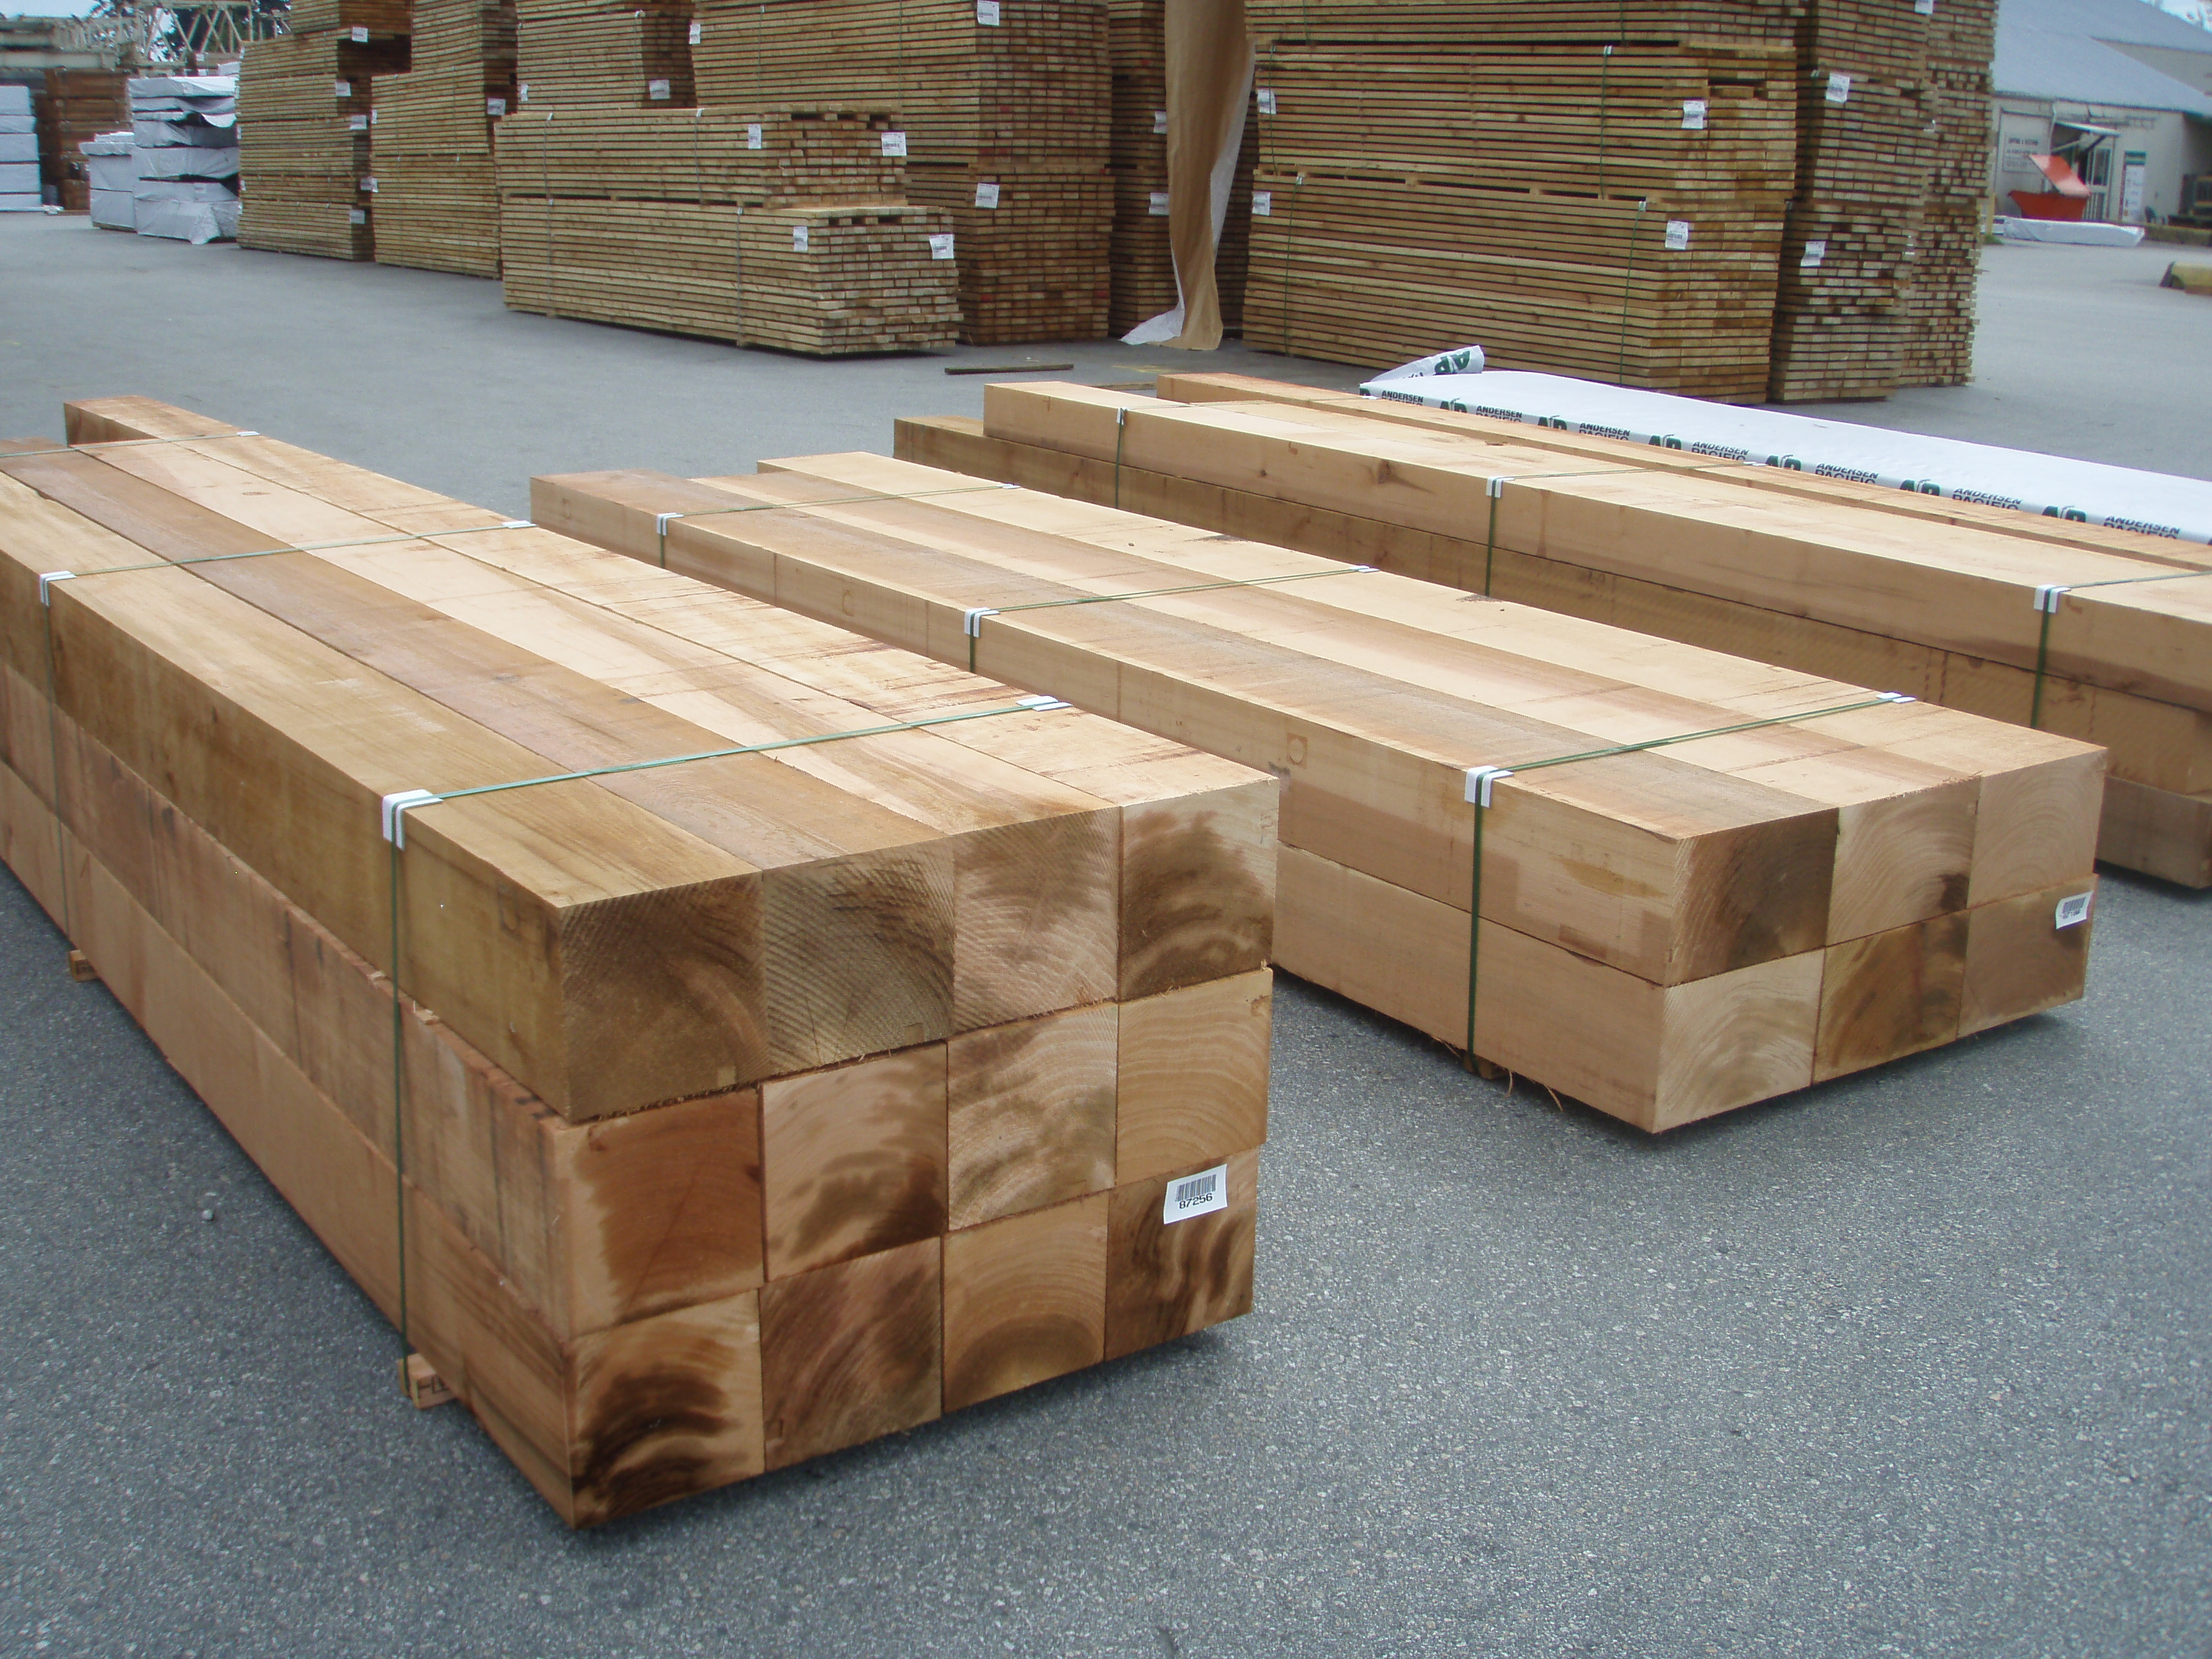 ClearTimber on the yard